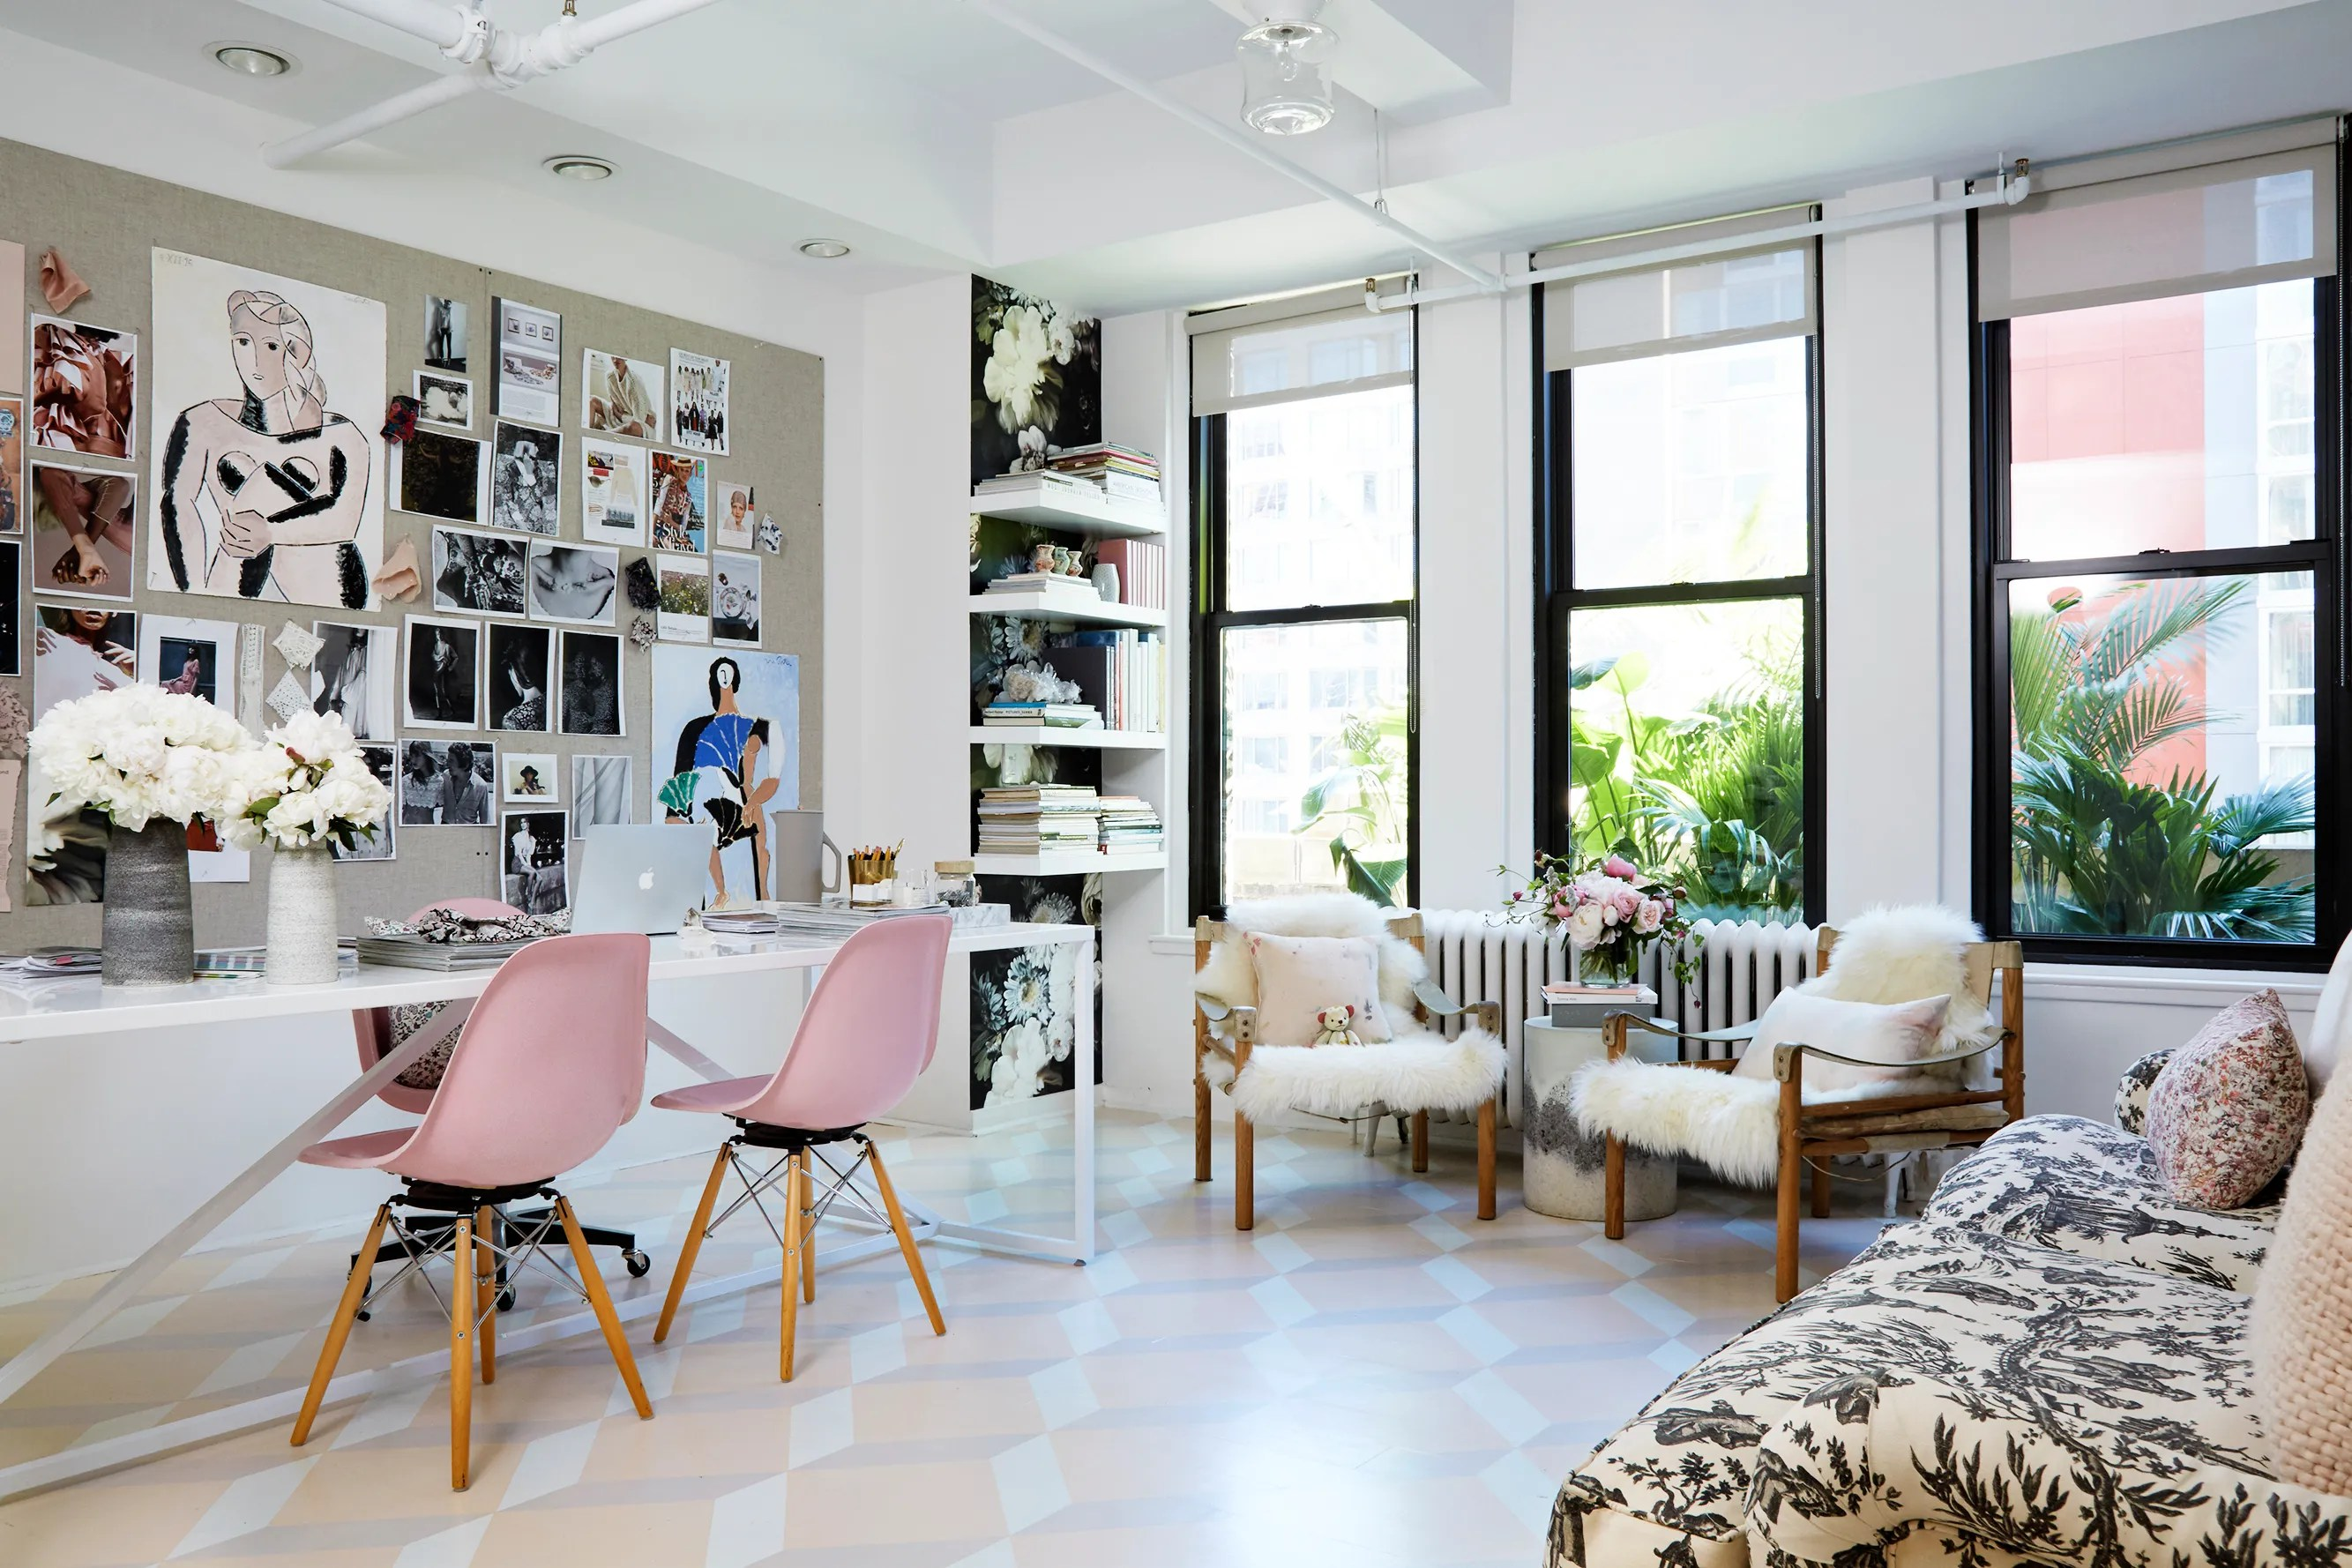 Wohnzimmer Interior Design Stores Rebecca Taylor's New York Office Decor Makeover Photos